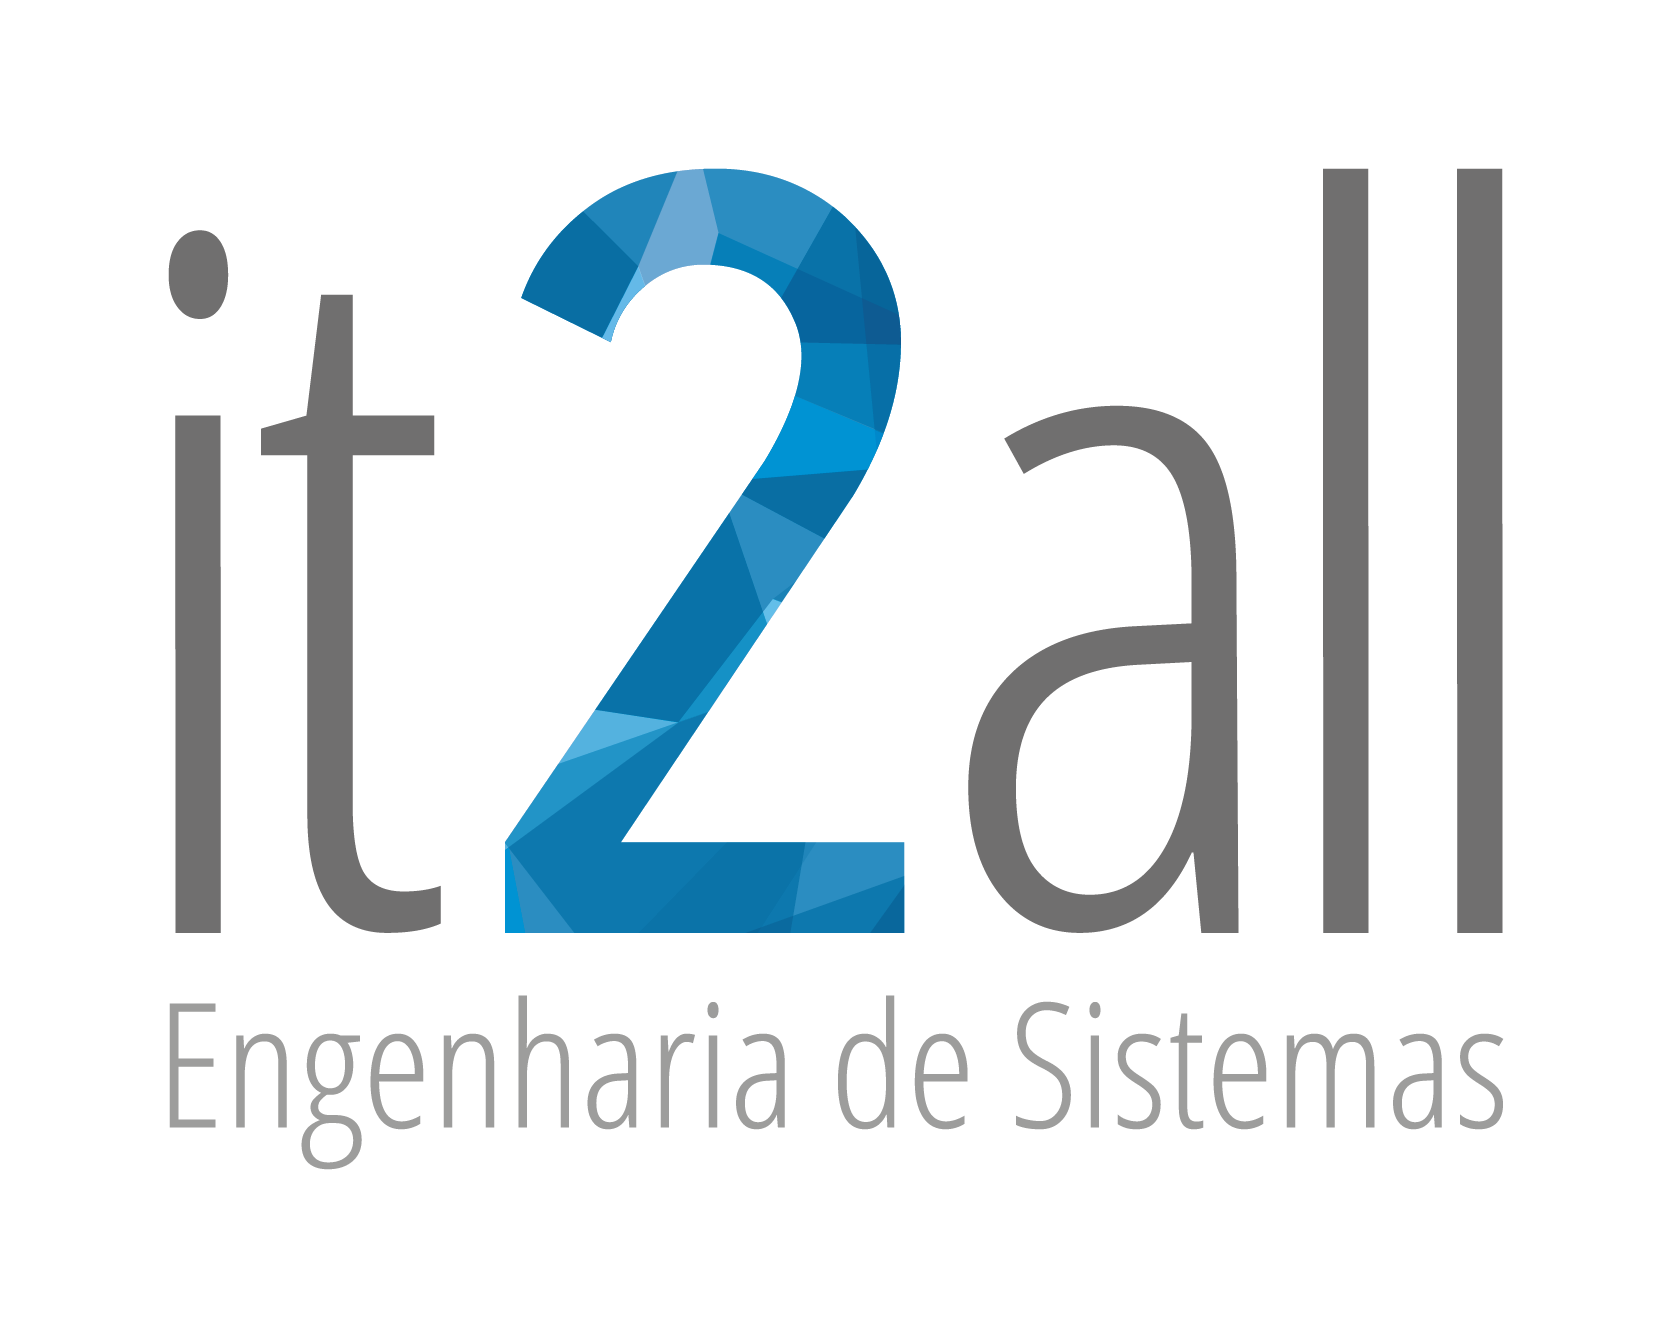 https://www.linkedin.com/company/it2all---engenharia-de-sistemas